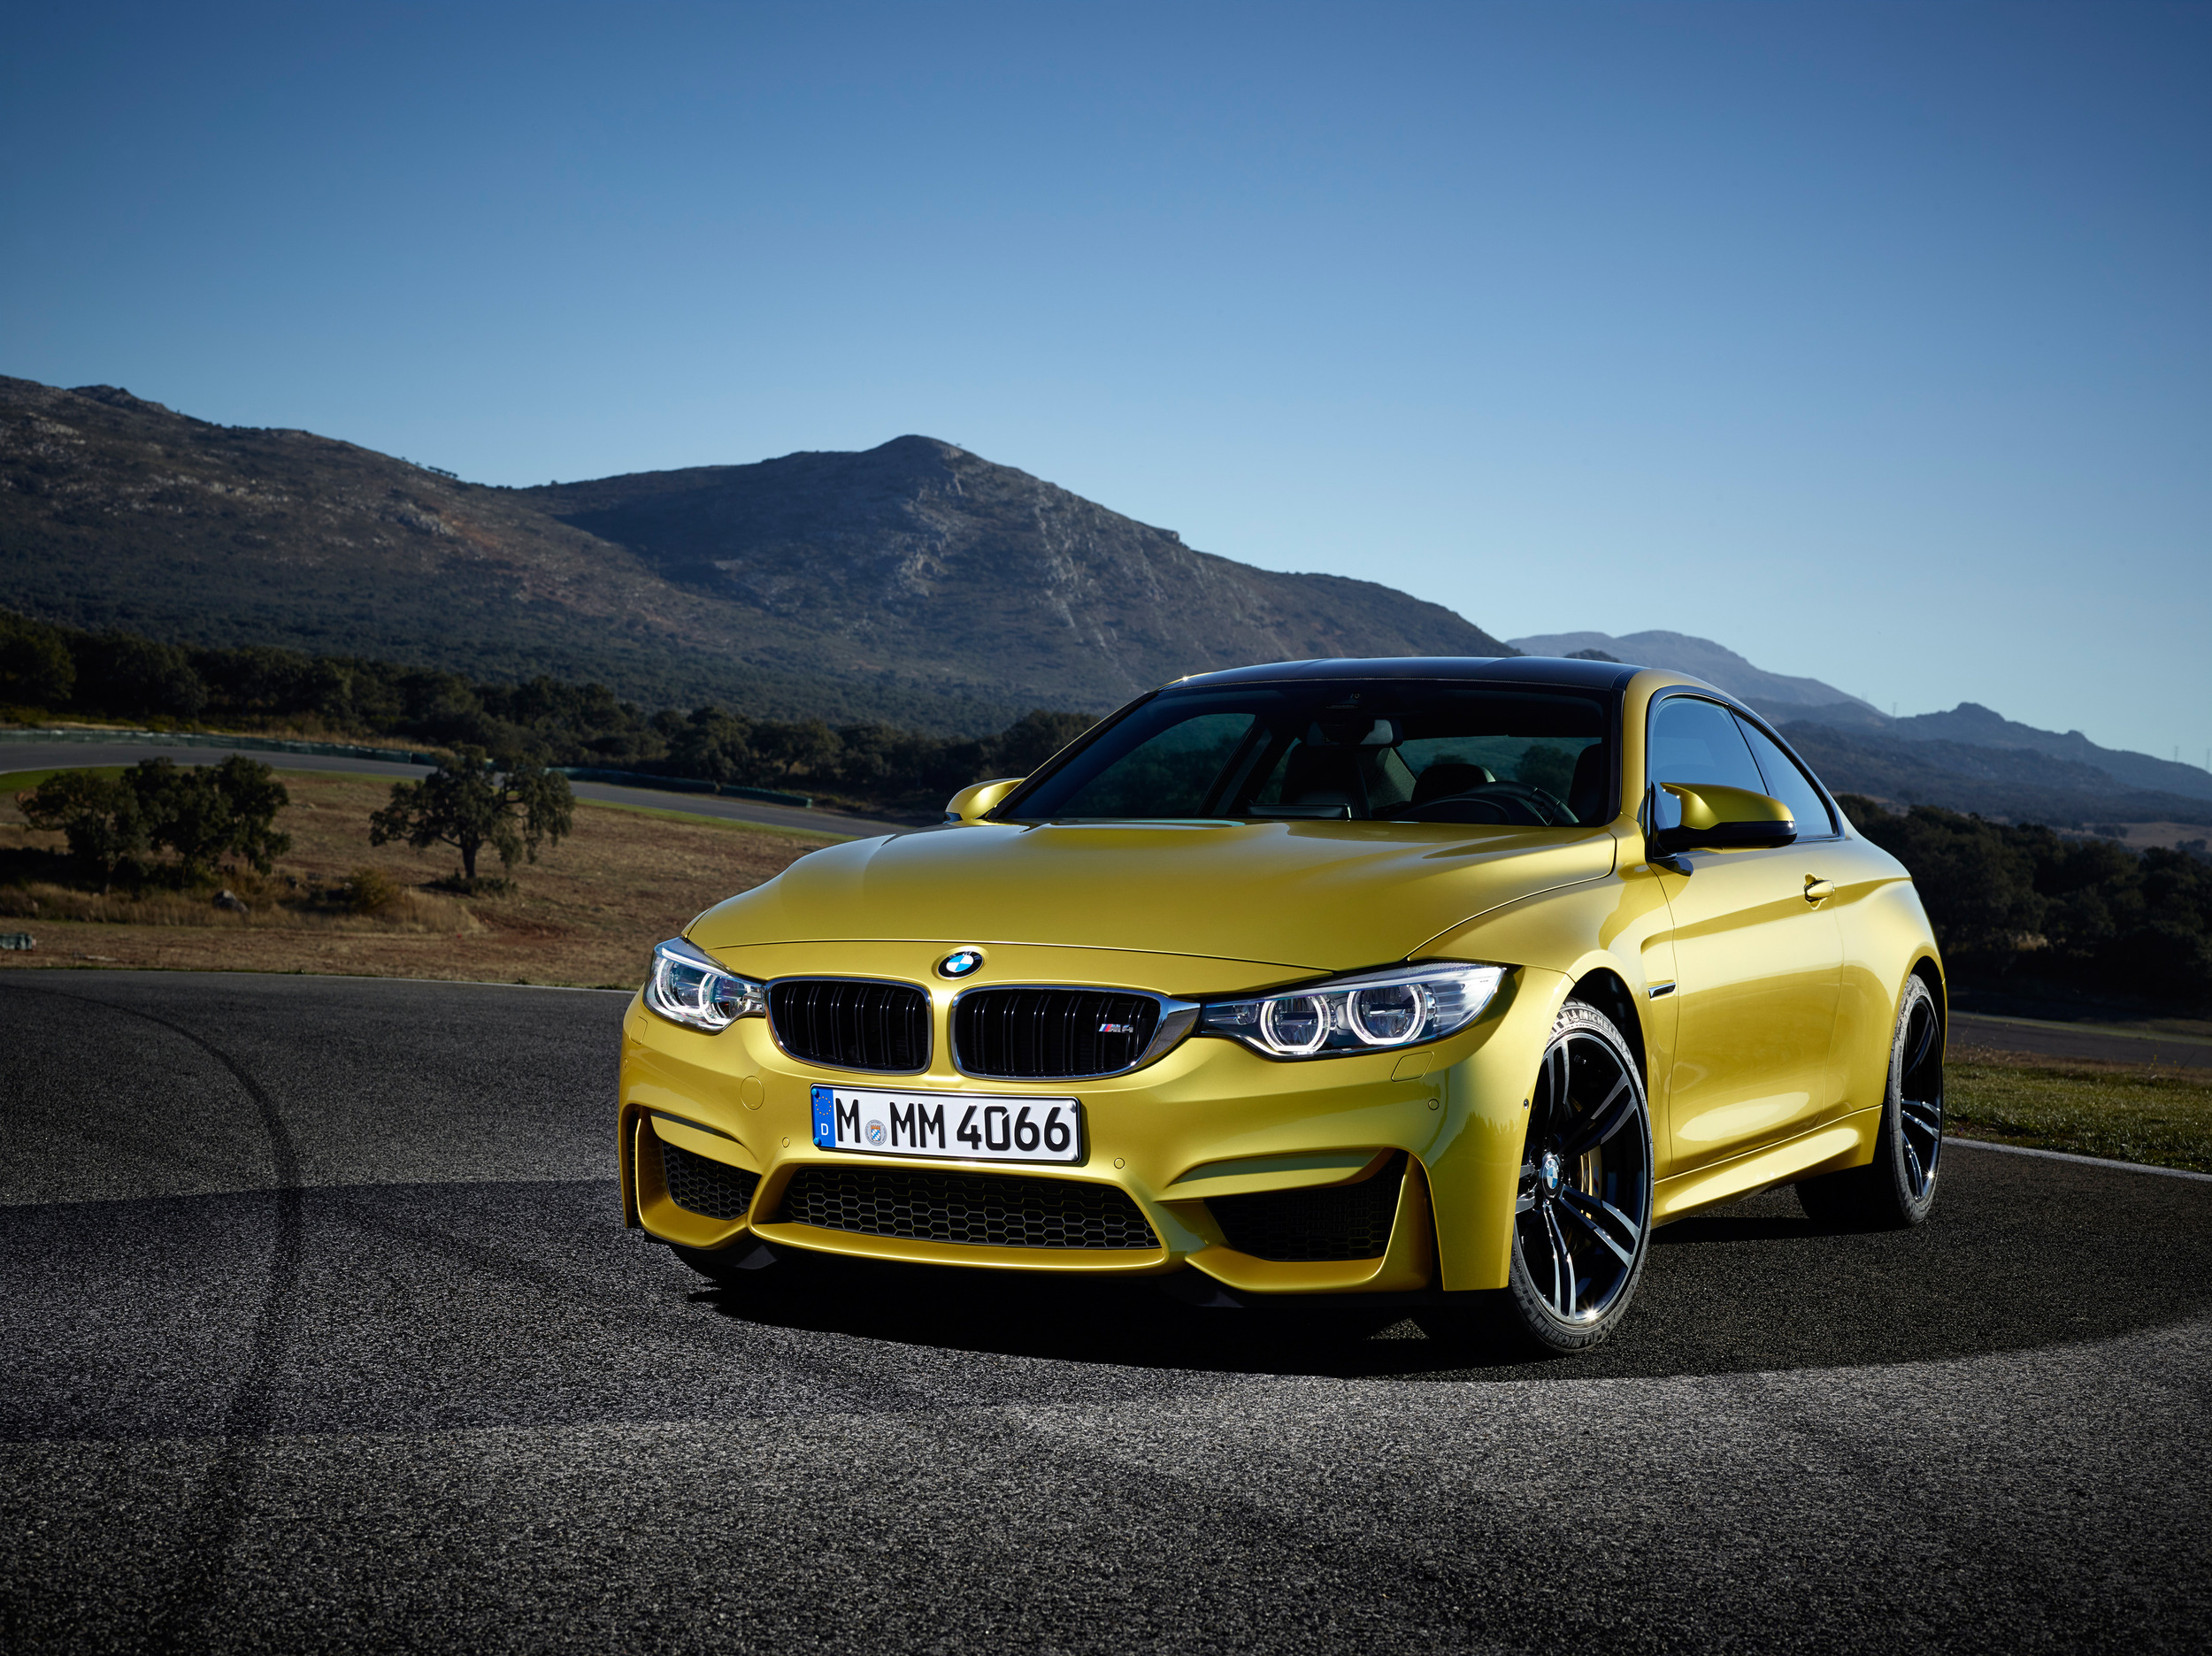 2015 BMW M4 Coupe Photo Gallery